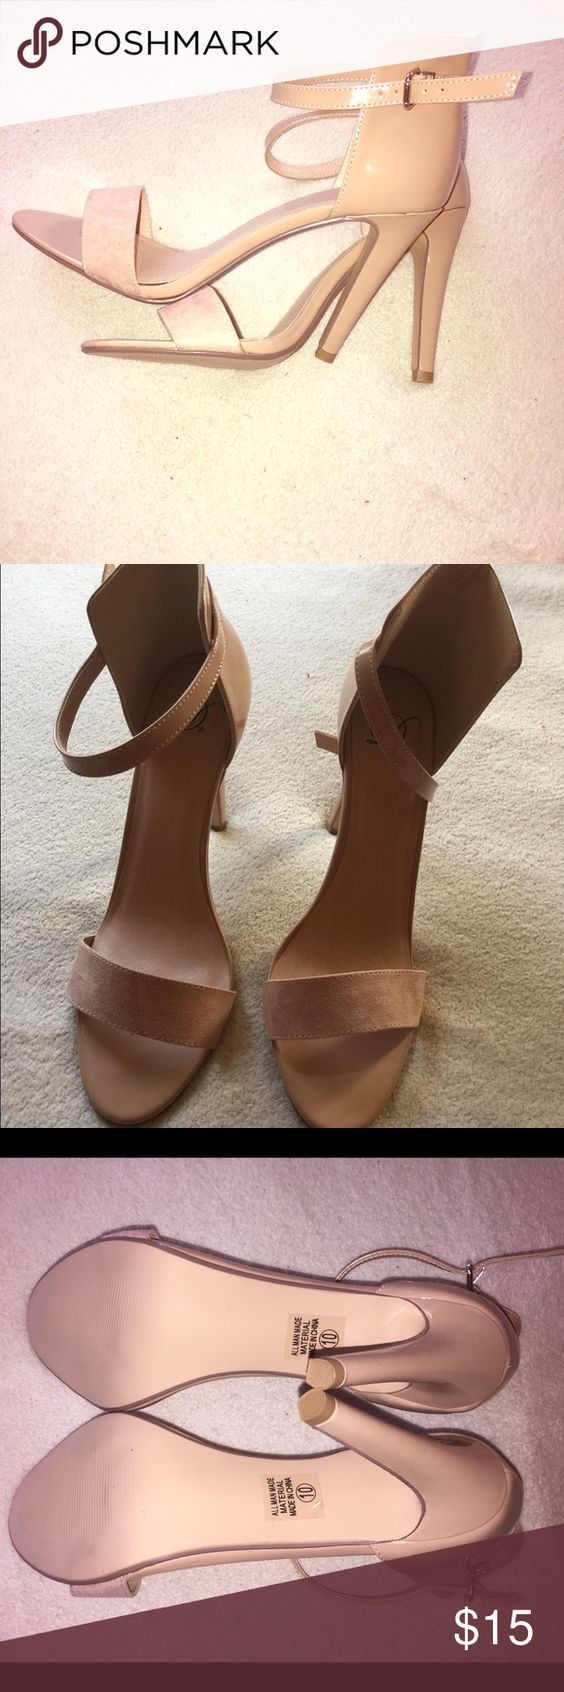 Beige strappy heels Beige heels with suede toe strap and patent leather back and ankle strap. Size 10 but runs small. More like 9. Never worn. Shoes Heels